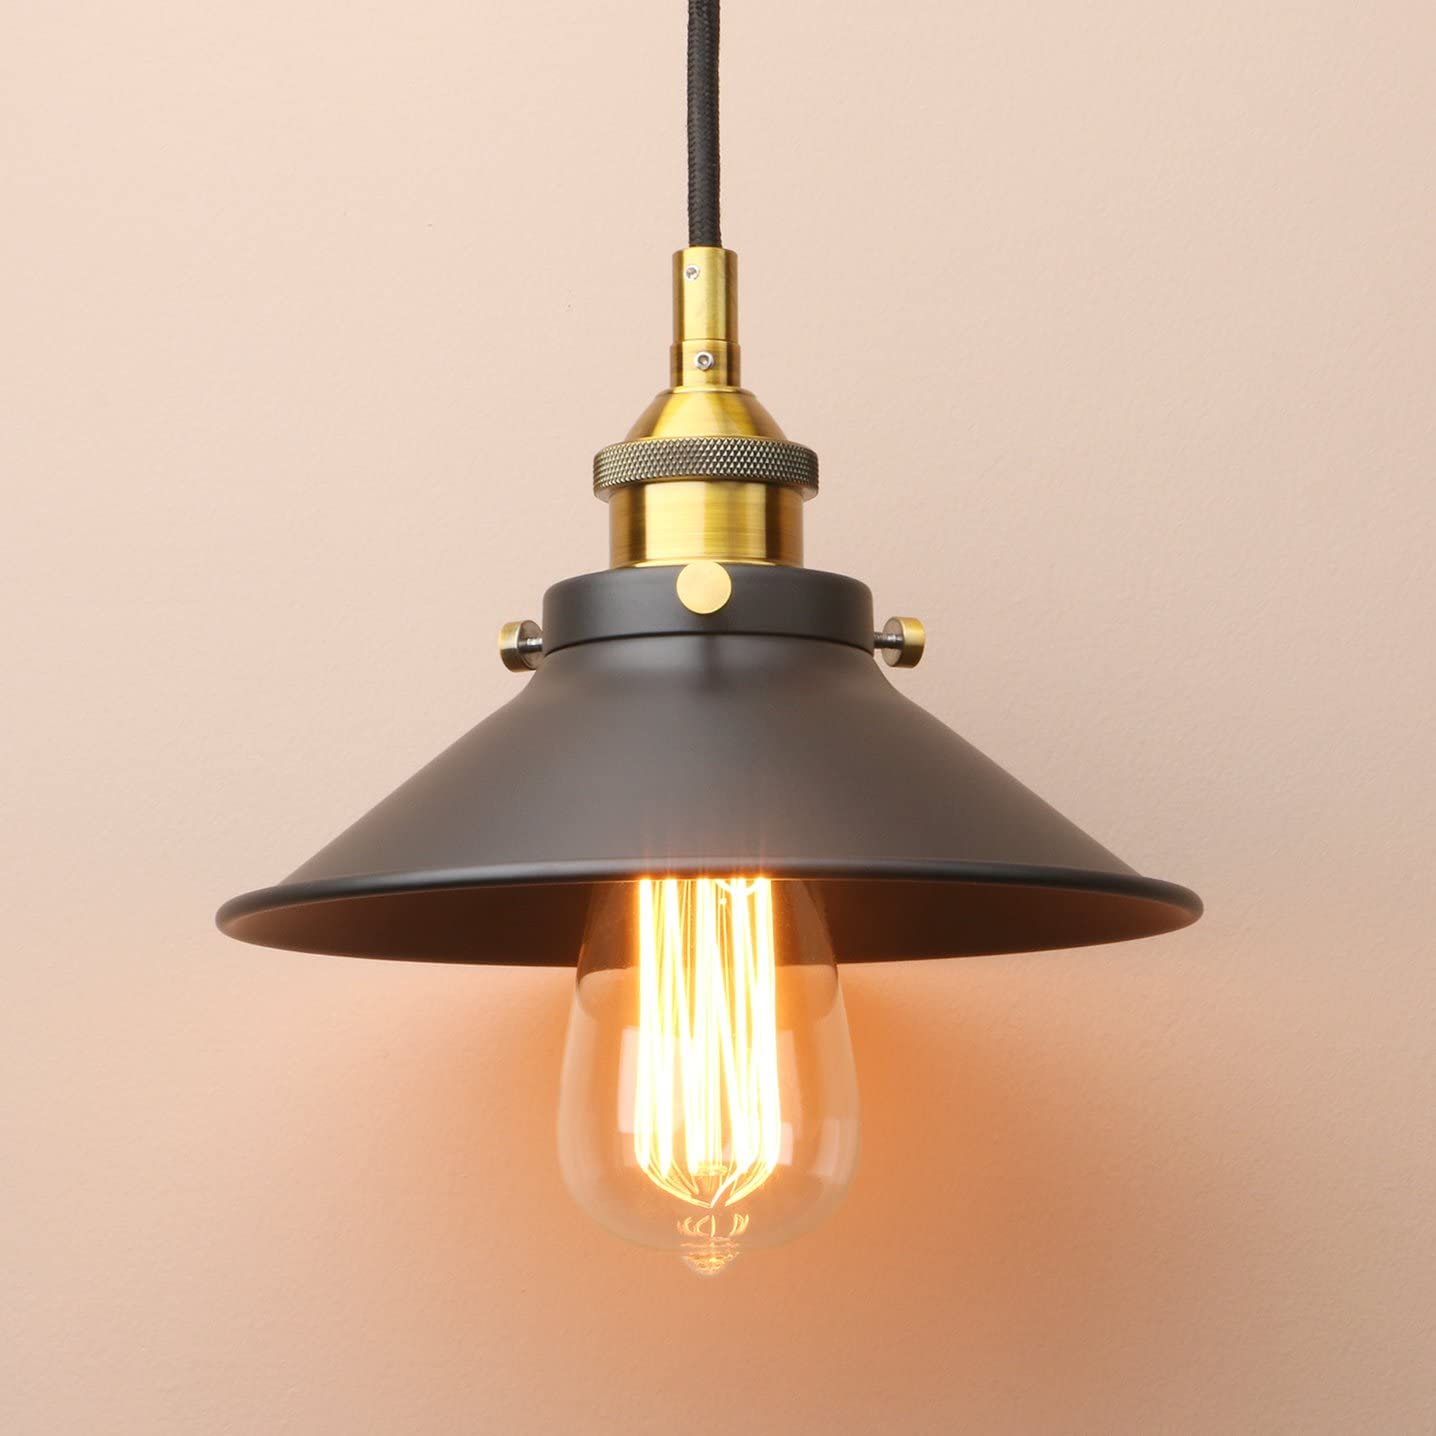 Permo Vintage Industrial Pendant Hanging Ceiling Lighting Fixture with Black Metal Funnel Shade